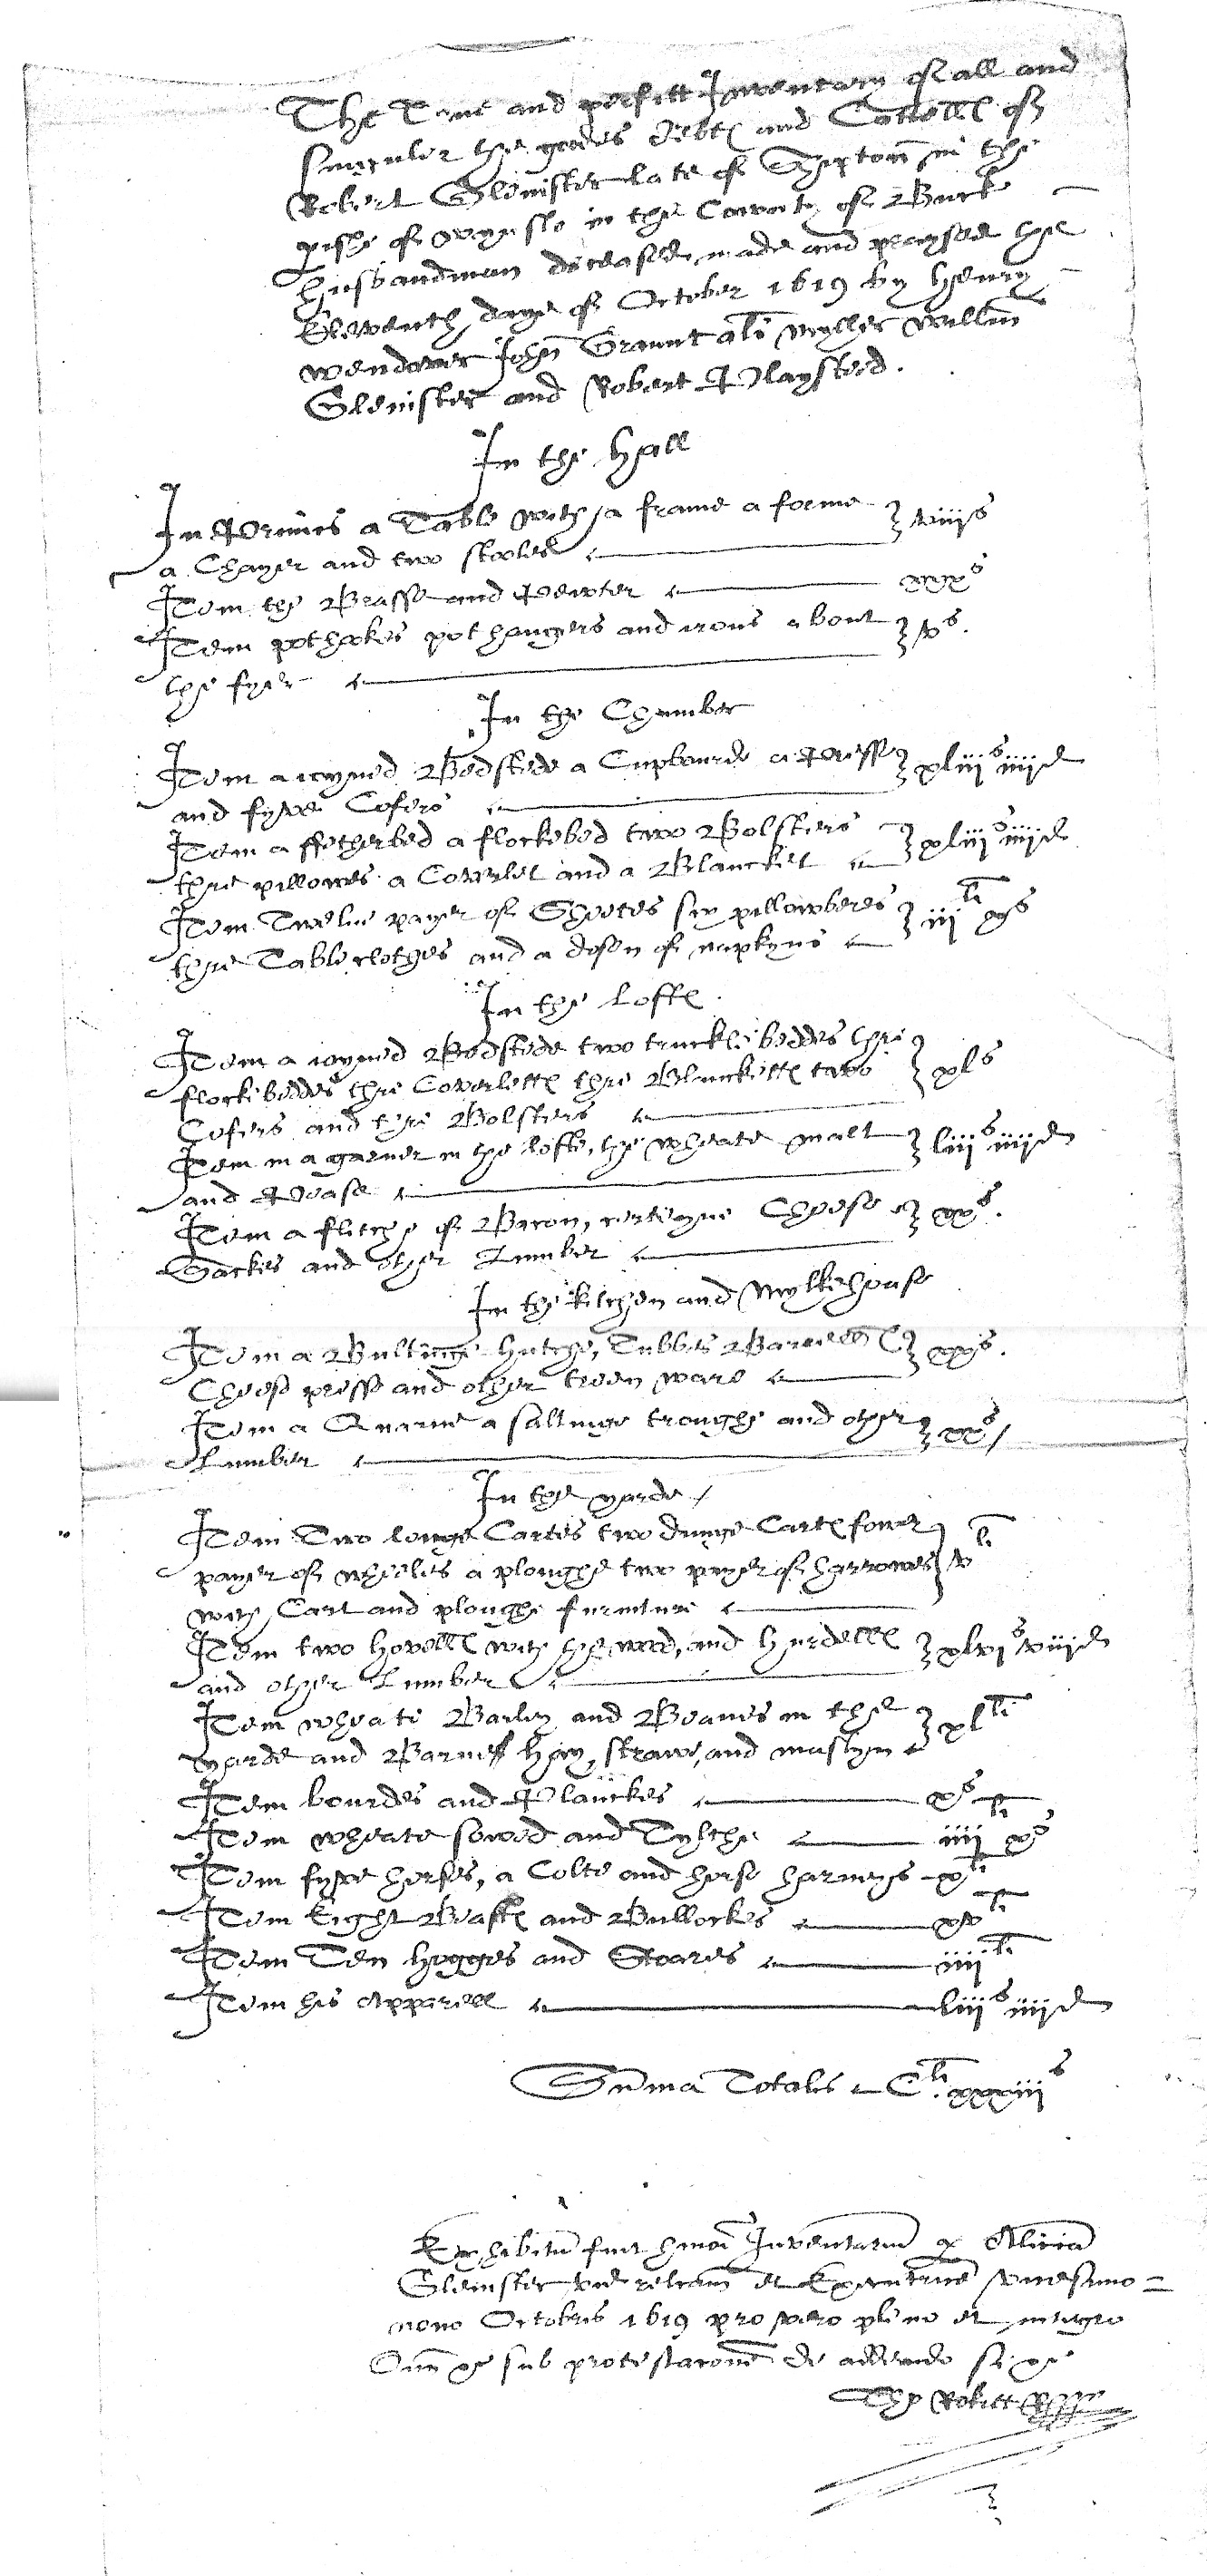 Inventory of Robert Glenister